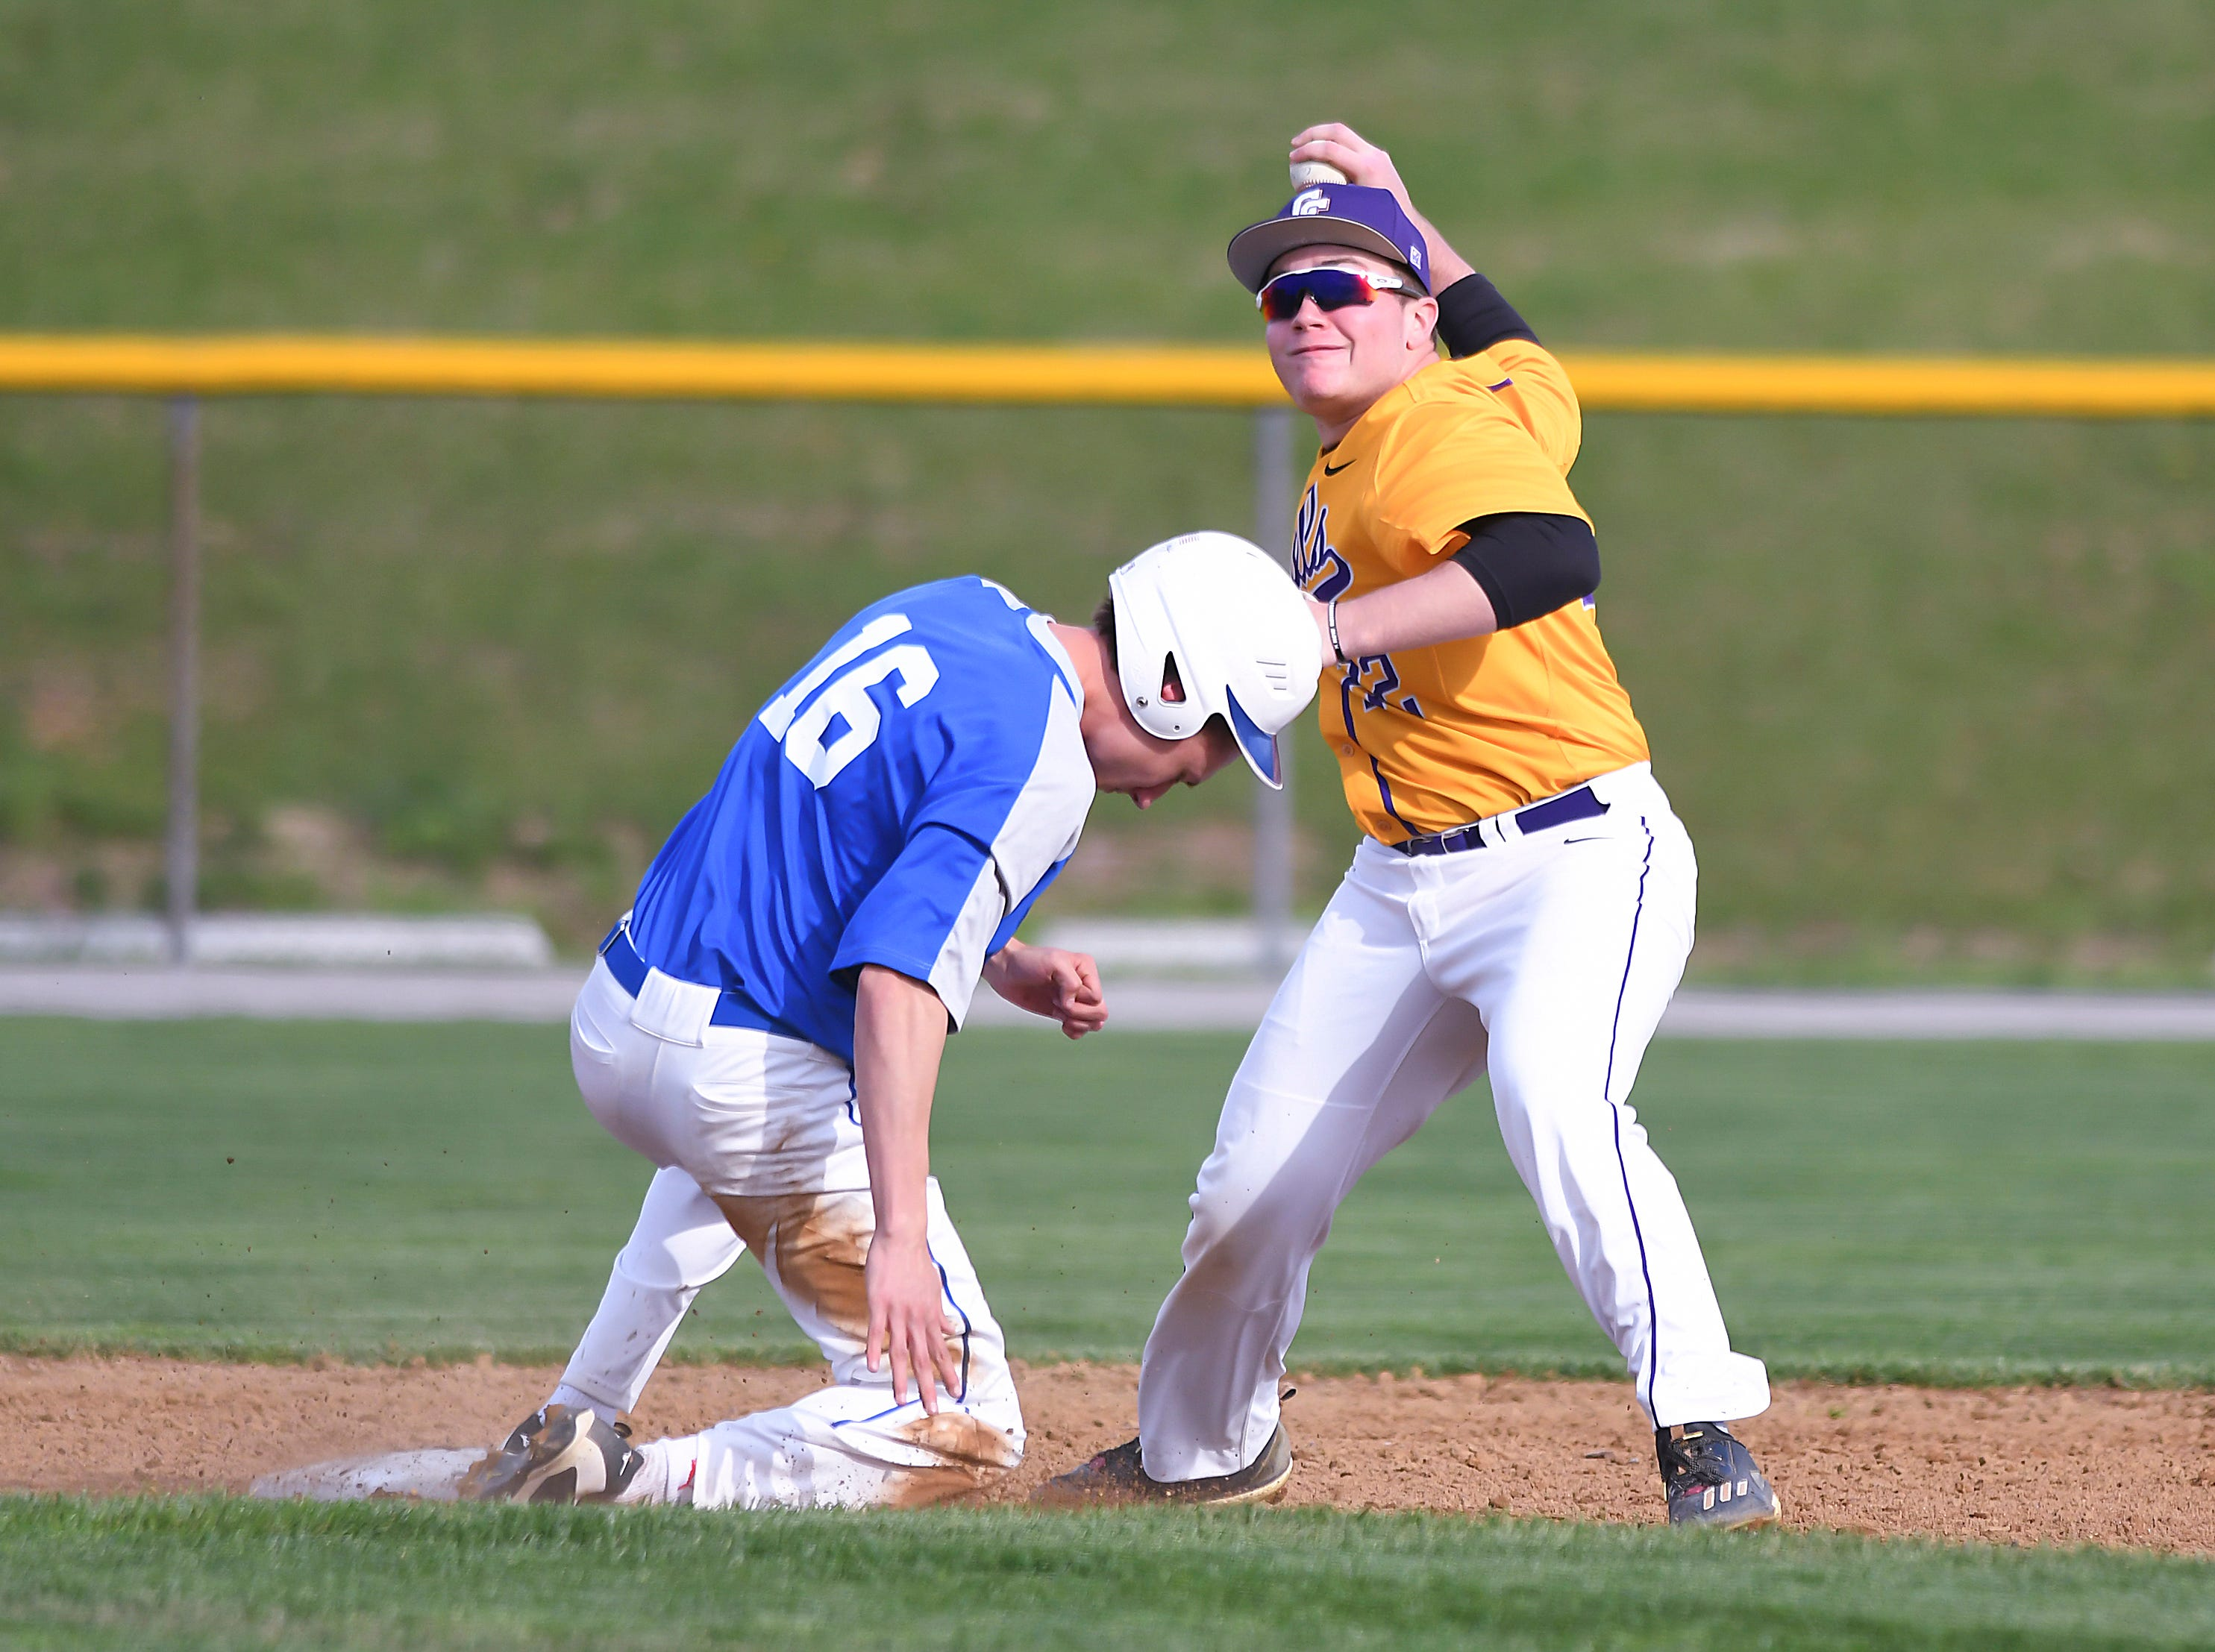 Brady Brooks (right) turns the double play against Highlands at Campbell County High School, April 26, 2018